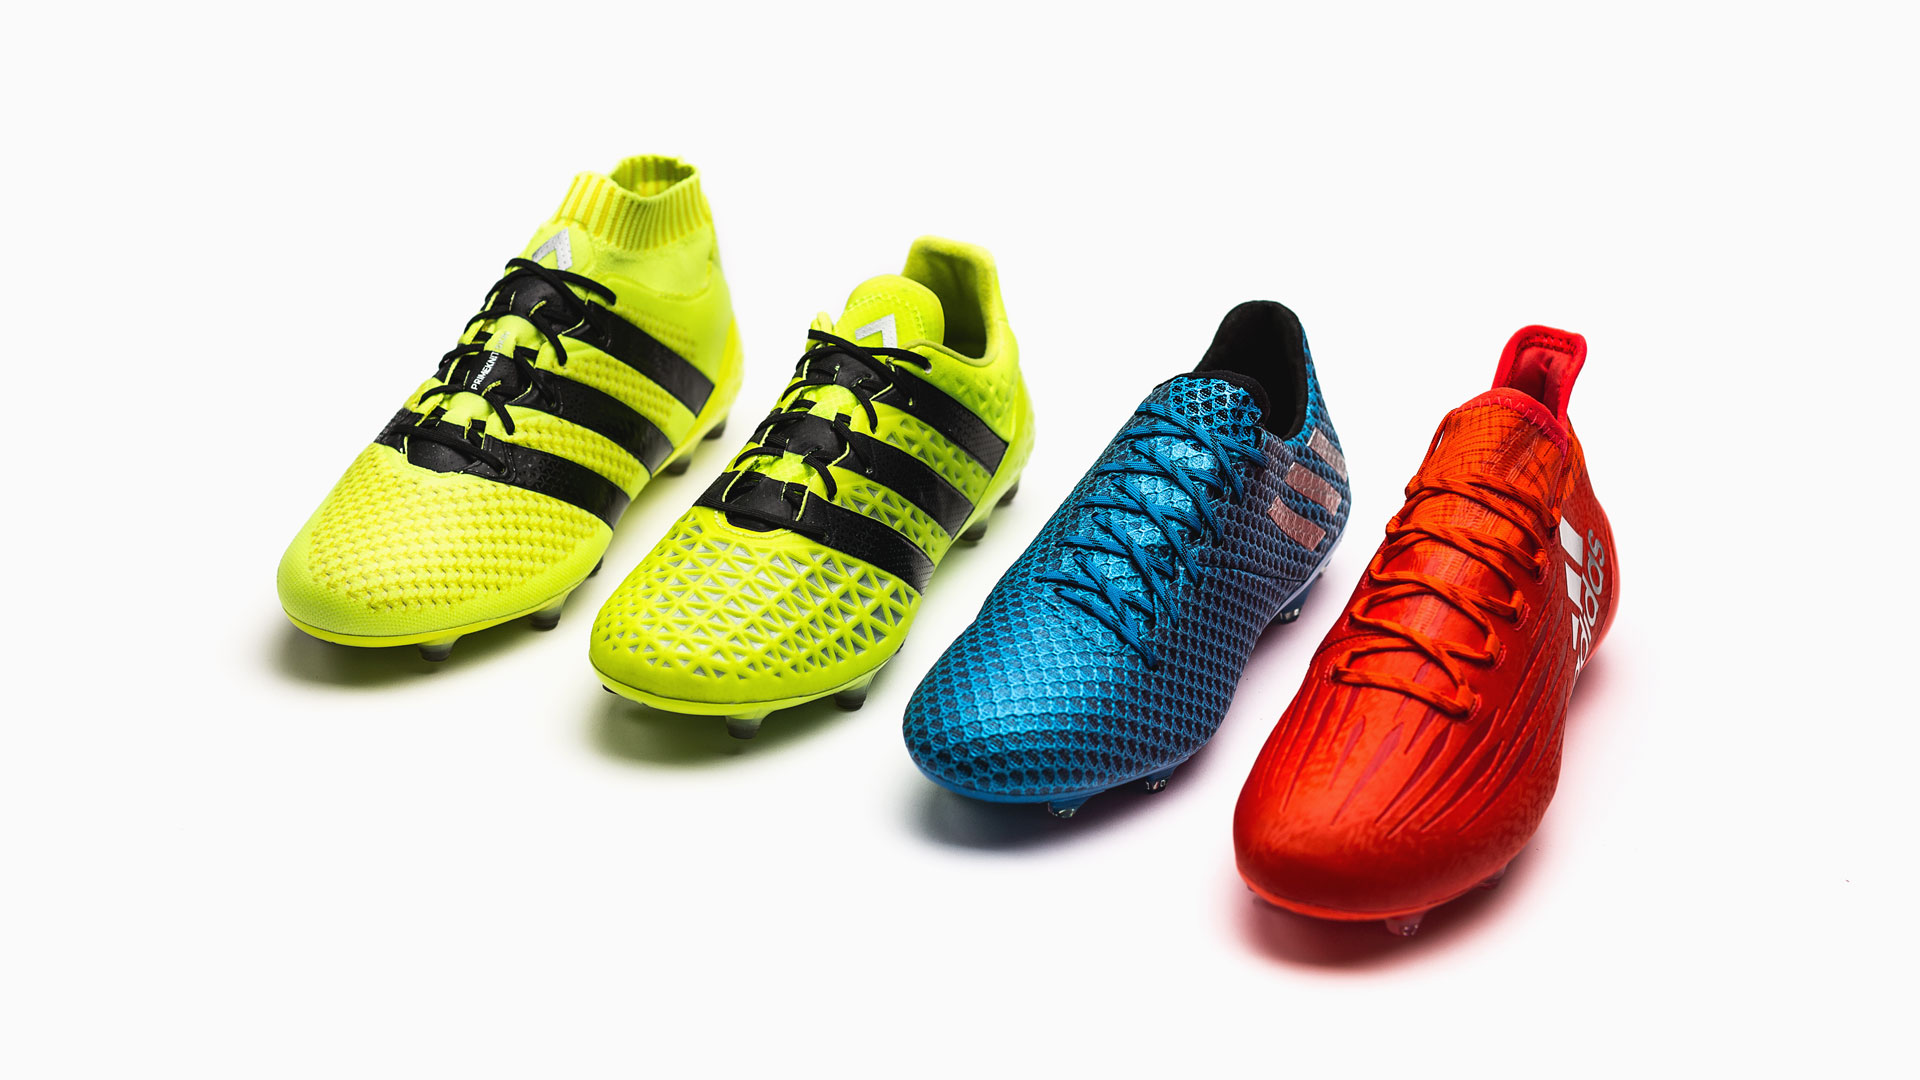 8eb6d988b64 adidas go all in with their Speed of Light boots